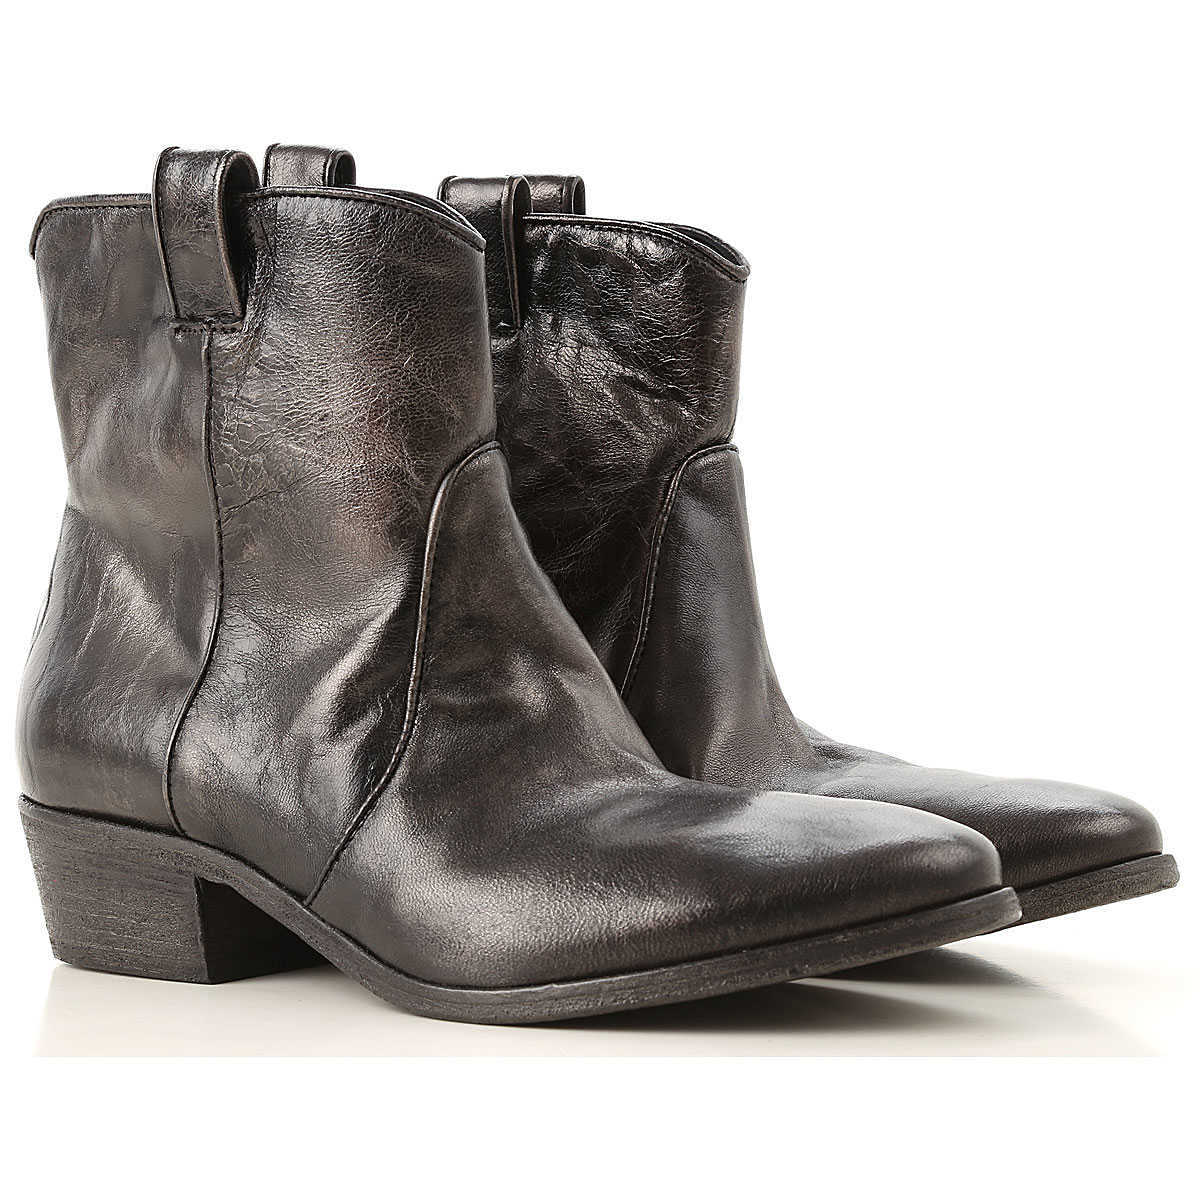 Elena Iachi Boots for Women Booties On Sale in Outlet - GOOFASH